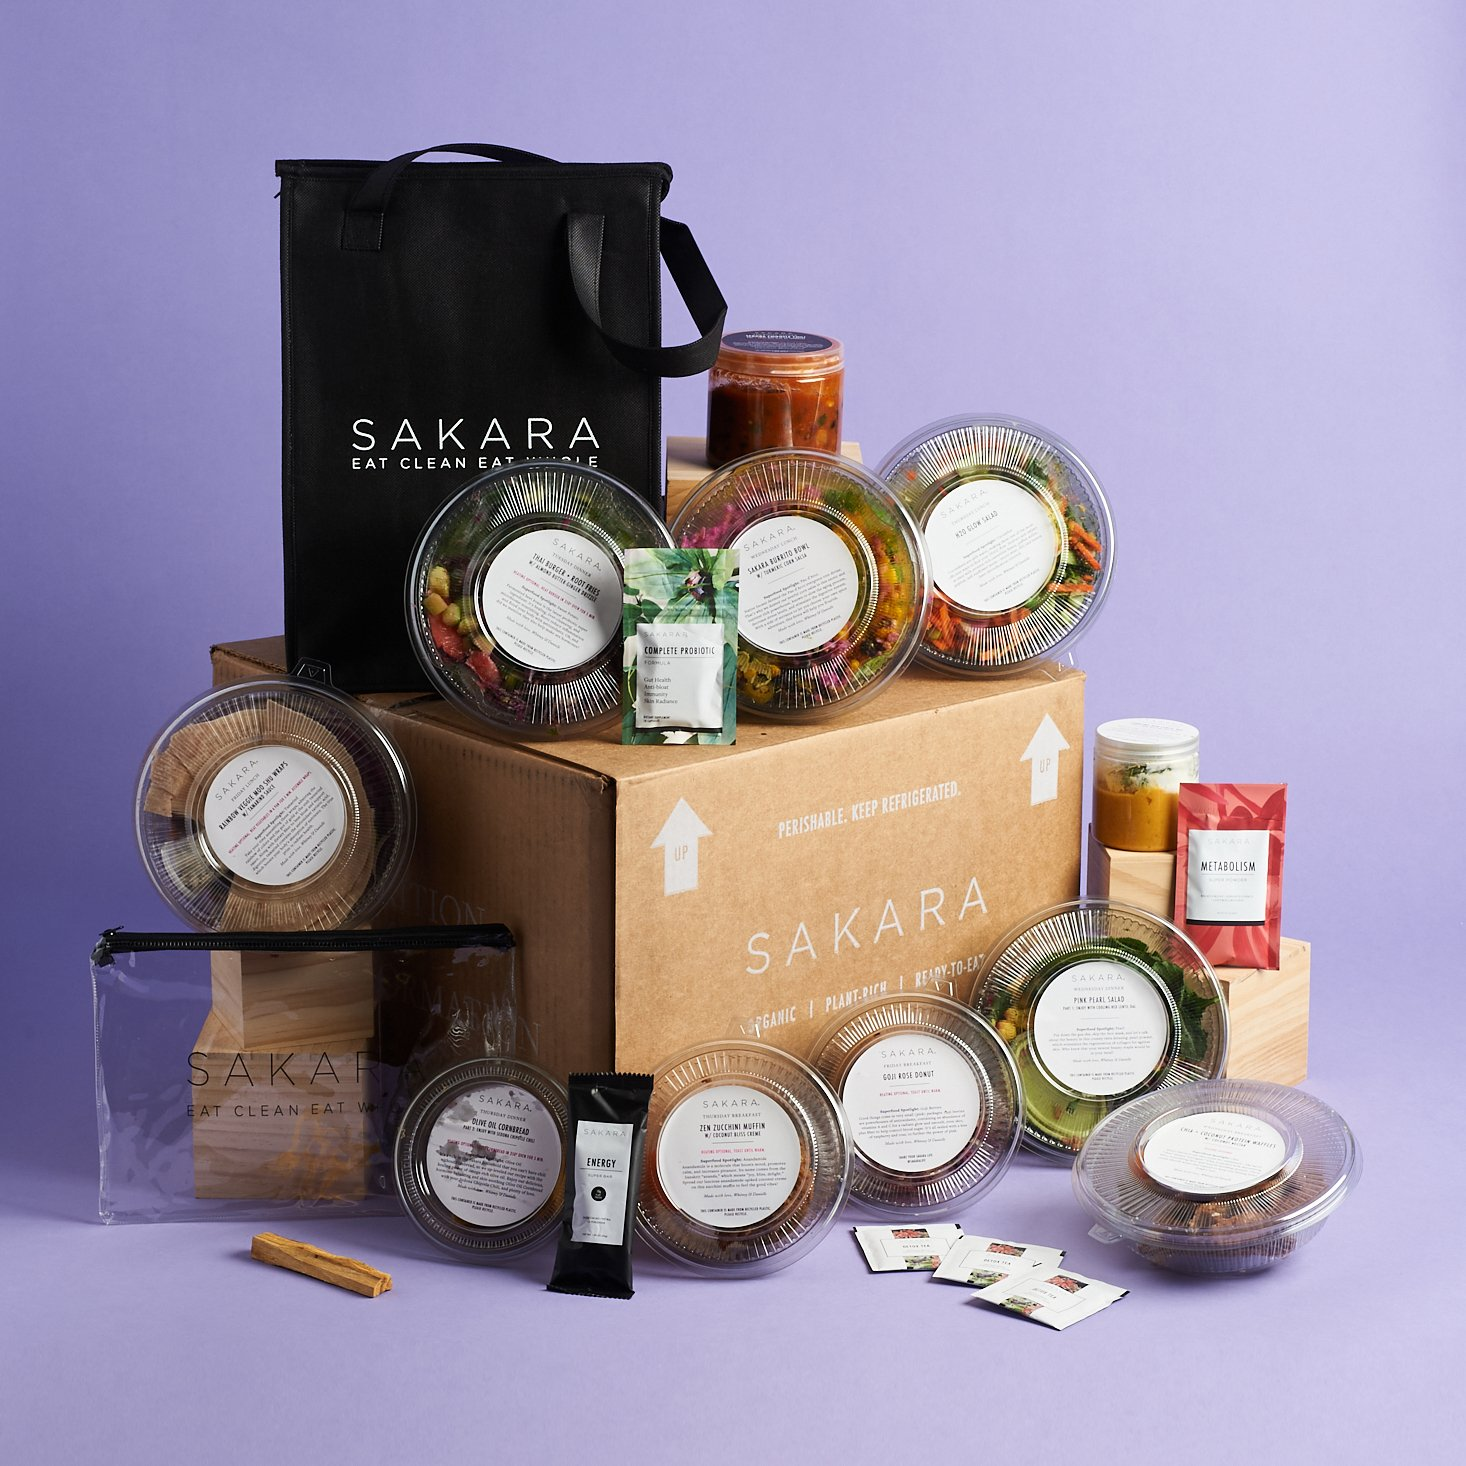 Sakara Life Review: Organic, Plant-Based, Gluten-Free Meal Delivery